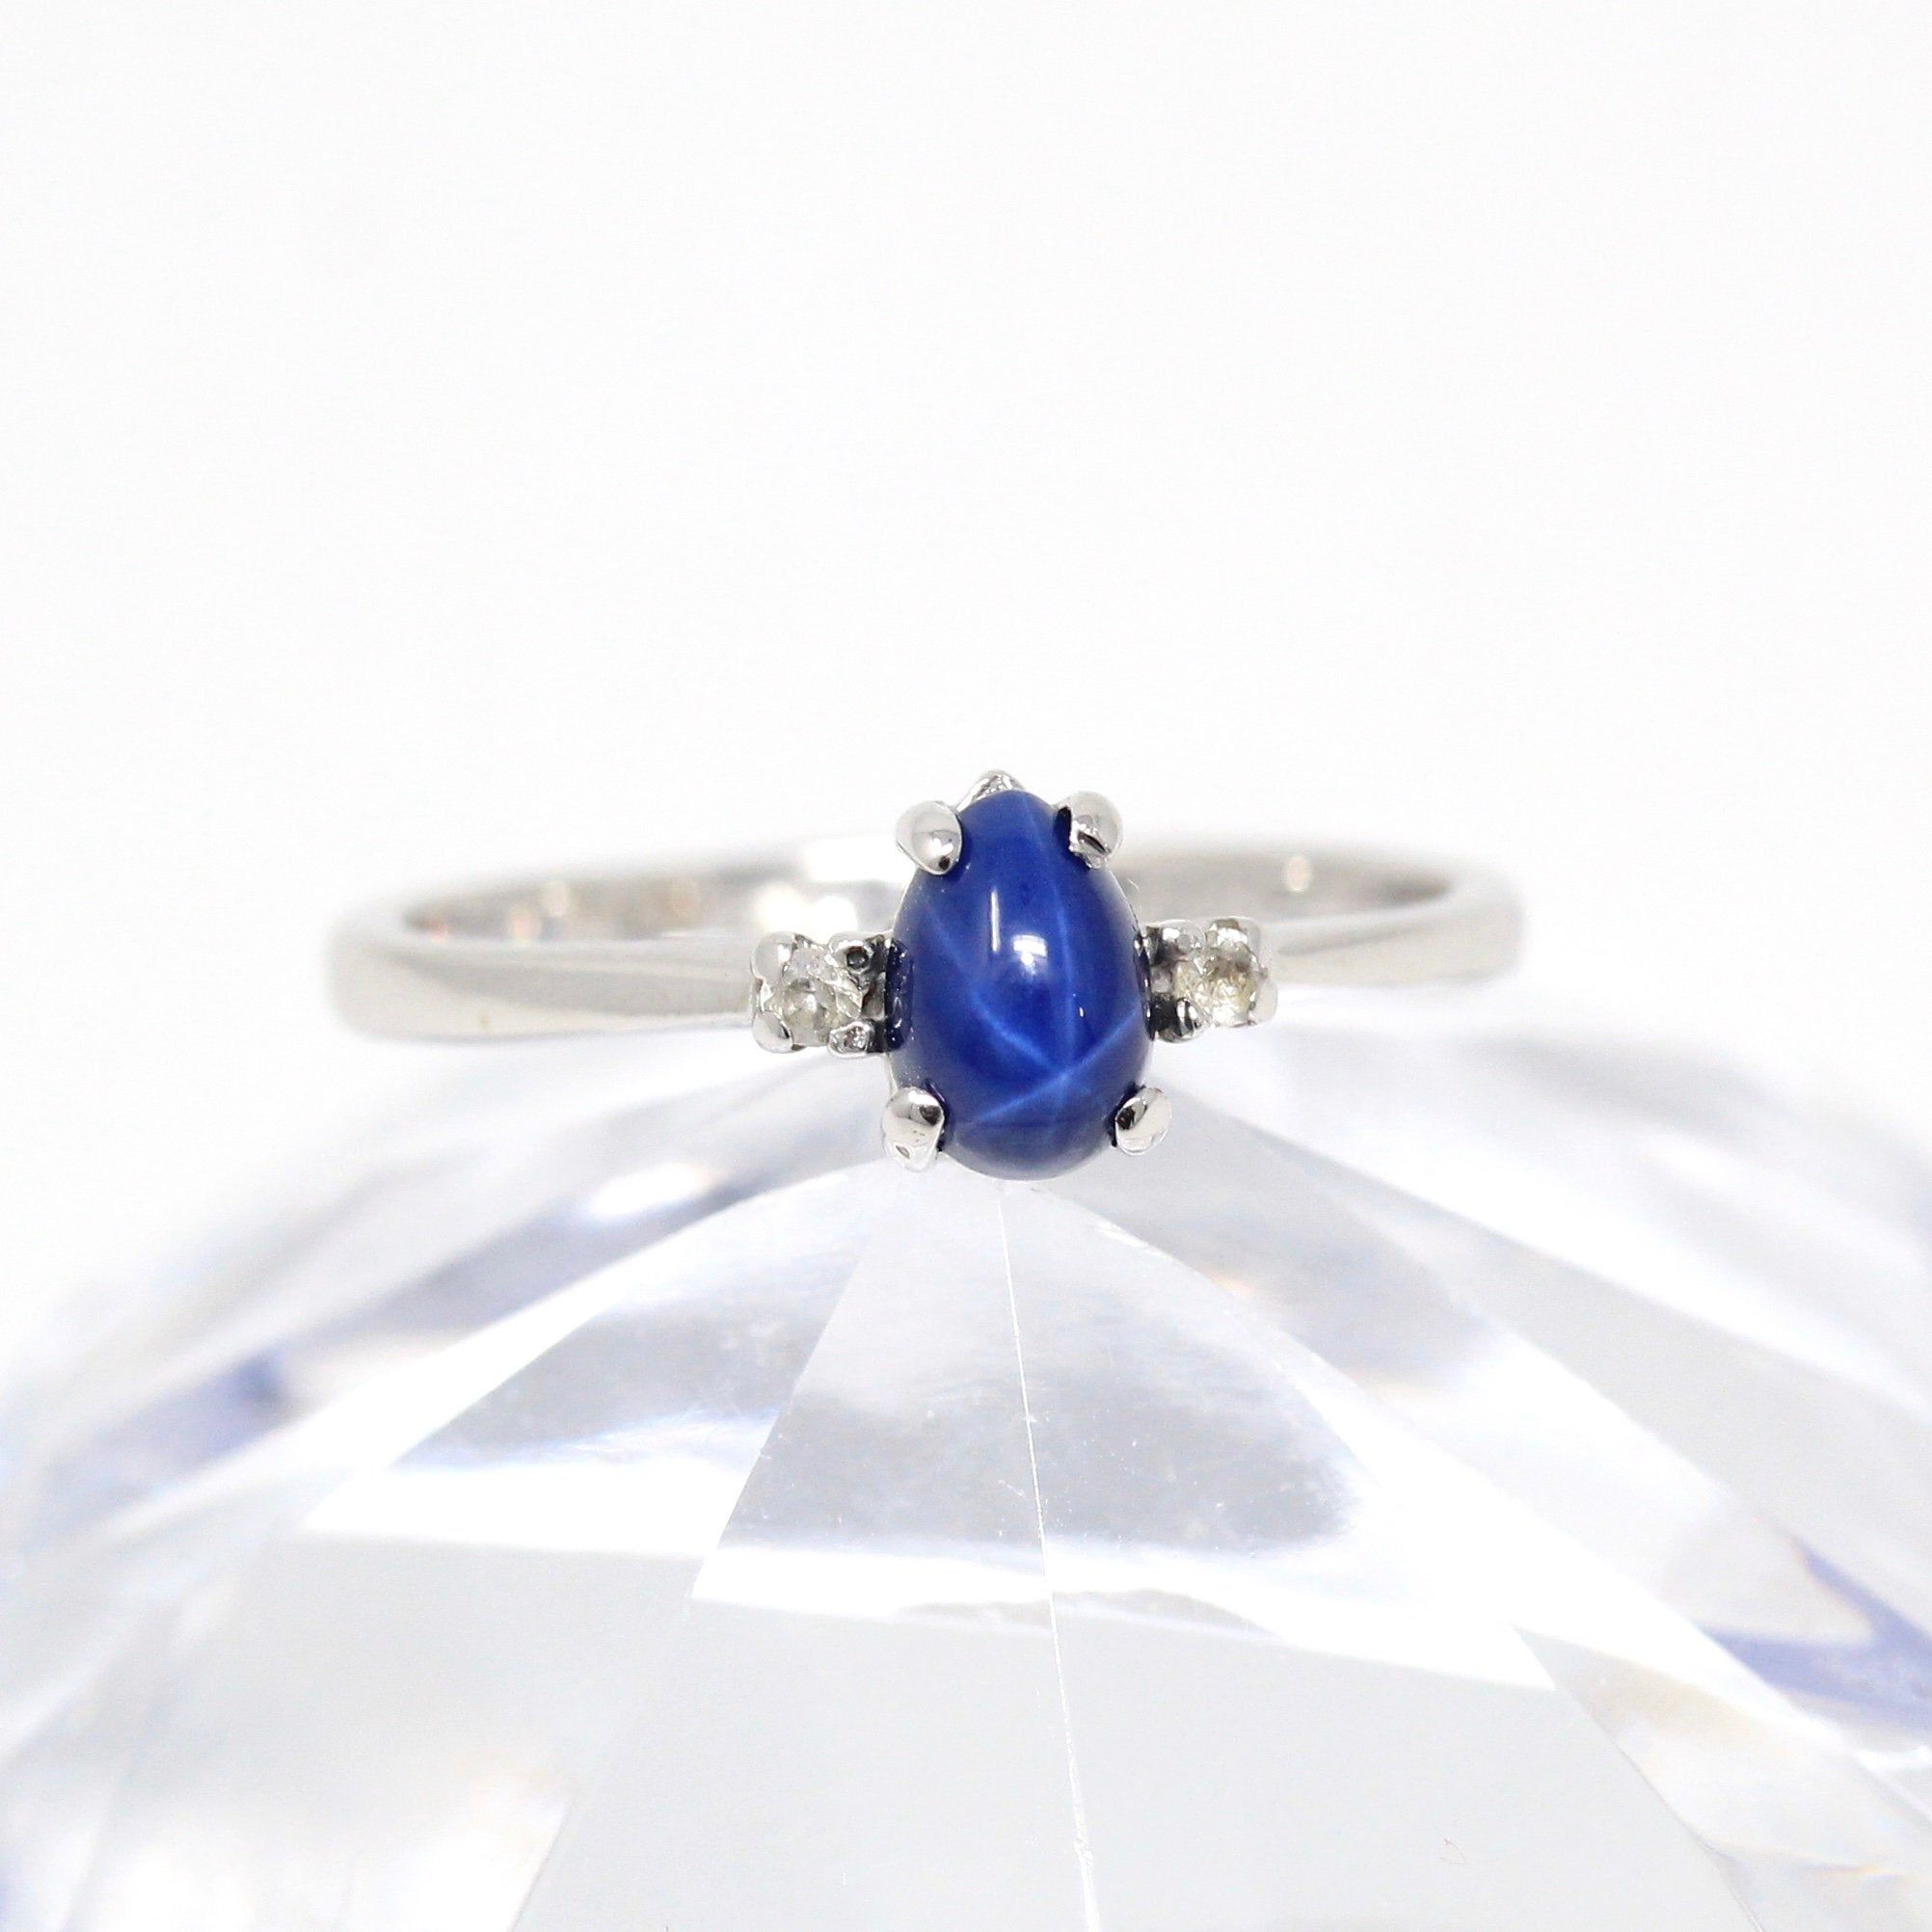 Created Star Sapphire Ring Vintage 10k White Gold Blue Cabochon September Birthstone Re In 2020 Vintage Sapphire Ring Star Sapphire Ring Vintage Star Sapphire Ring